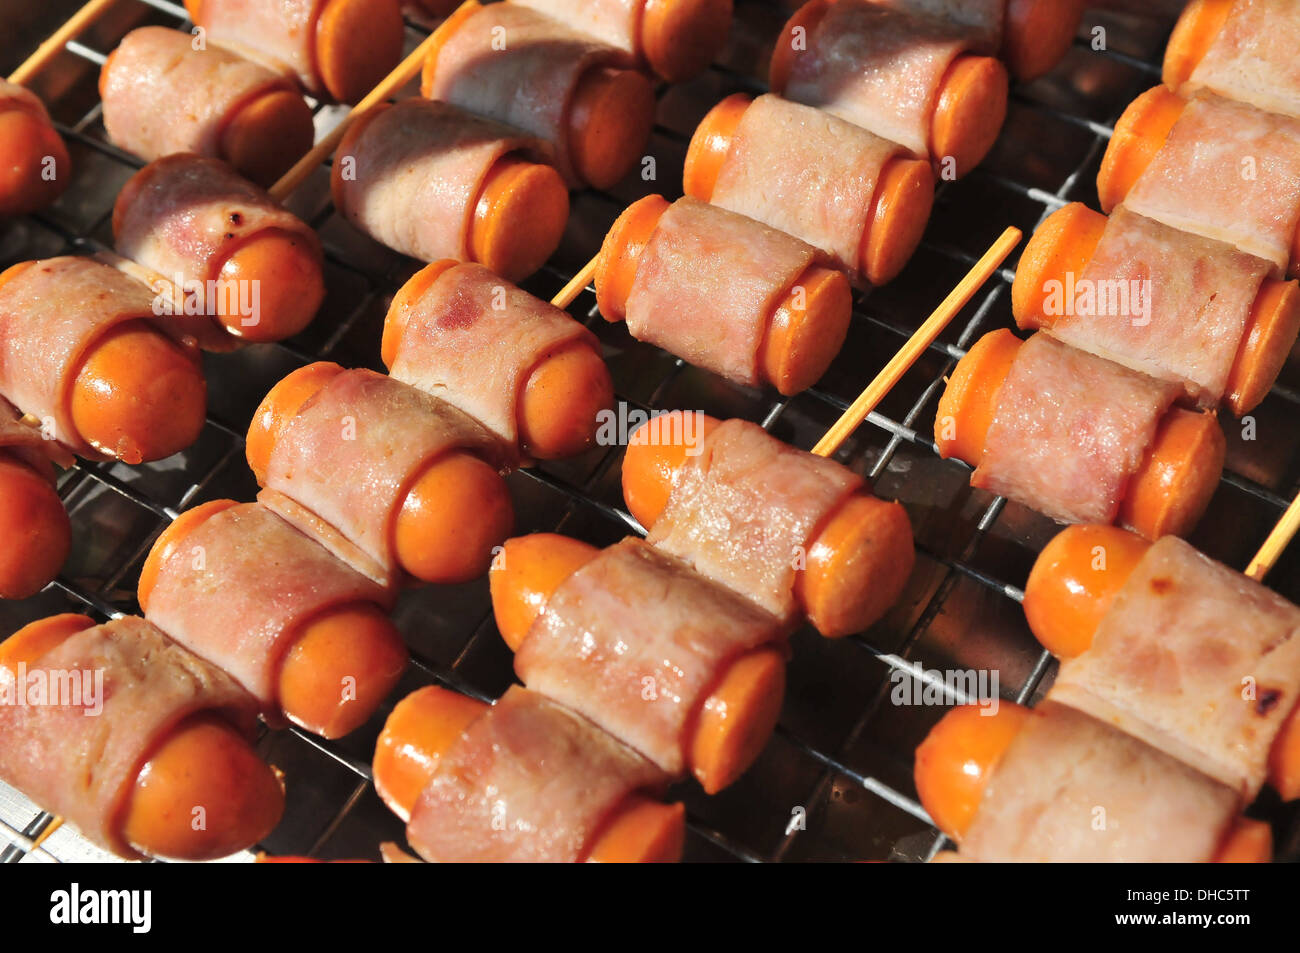 Thailand street food - Thai bacon-wrapped hot dogs - Stock Image